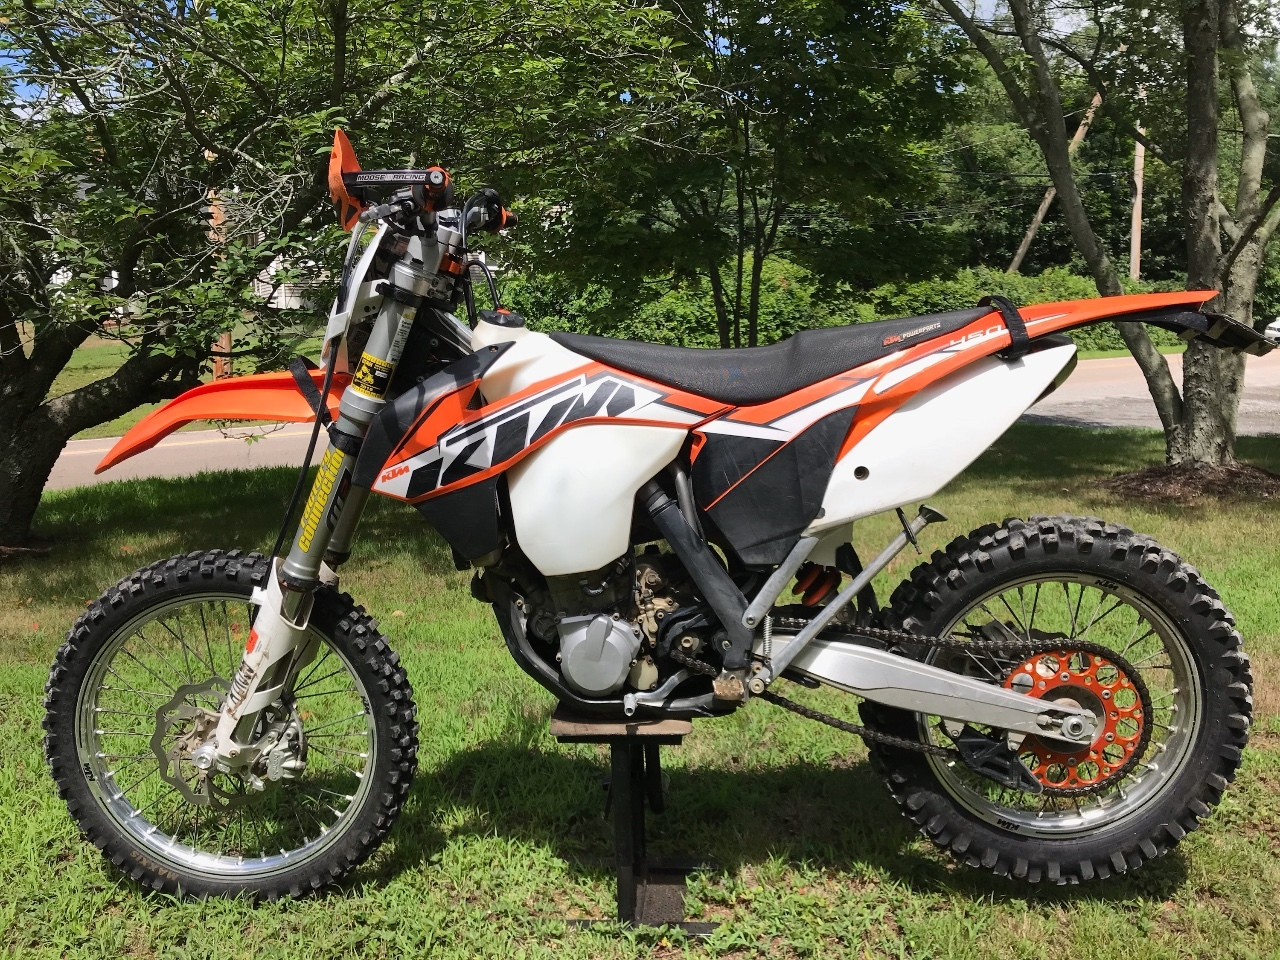 2008 Ktm 450 Xcw Manual 2013 Xc W Wiring Diagram Array For Sale 5 Motorcycles Cycletrader Com Rh